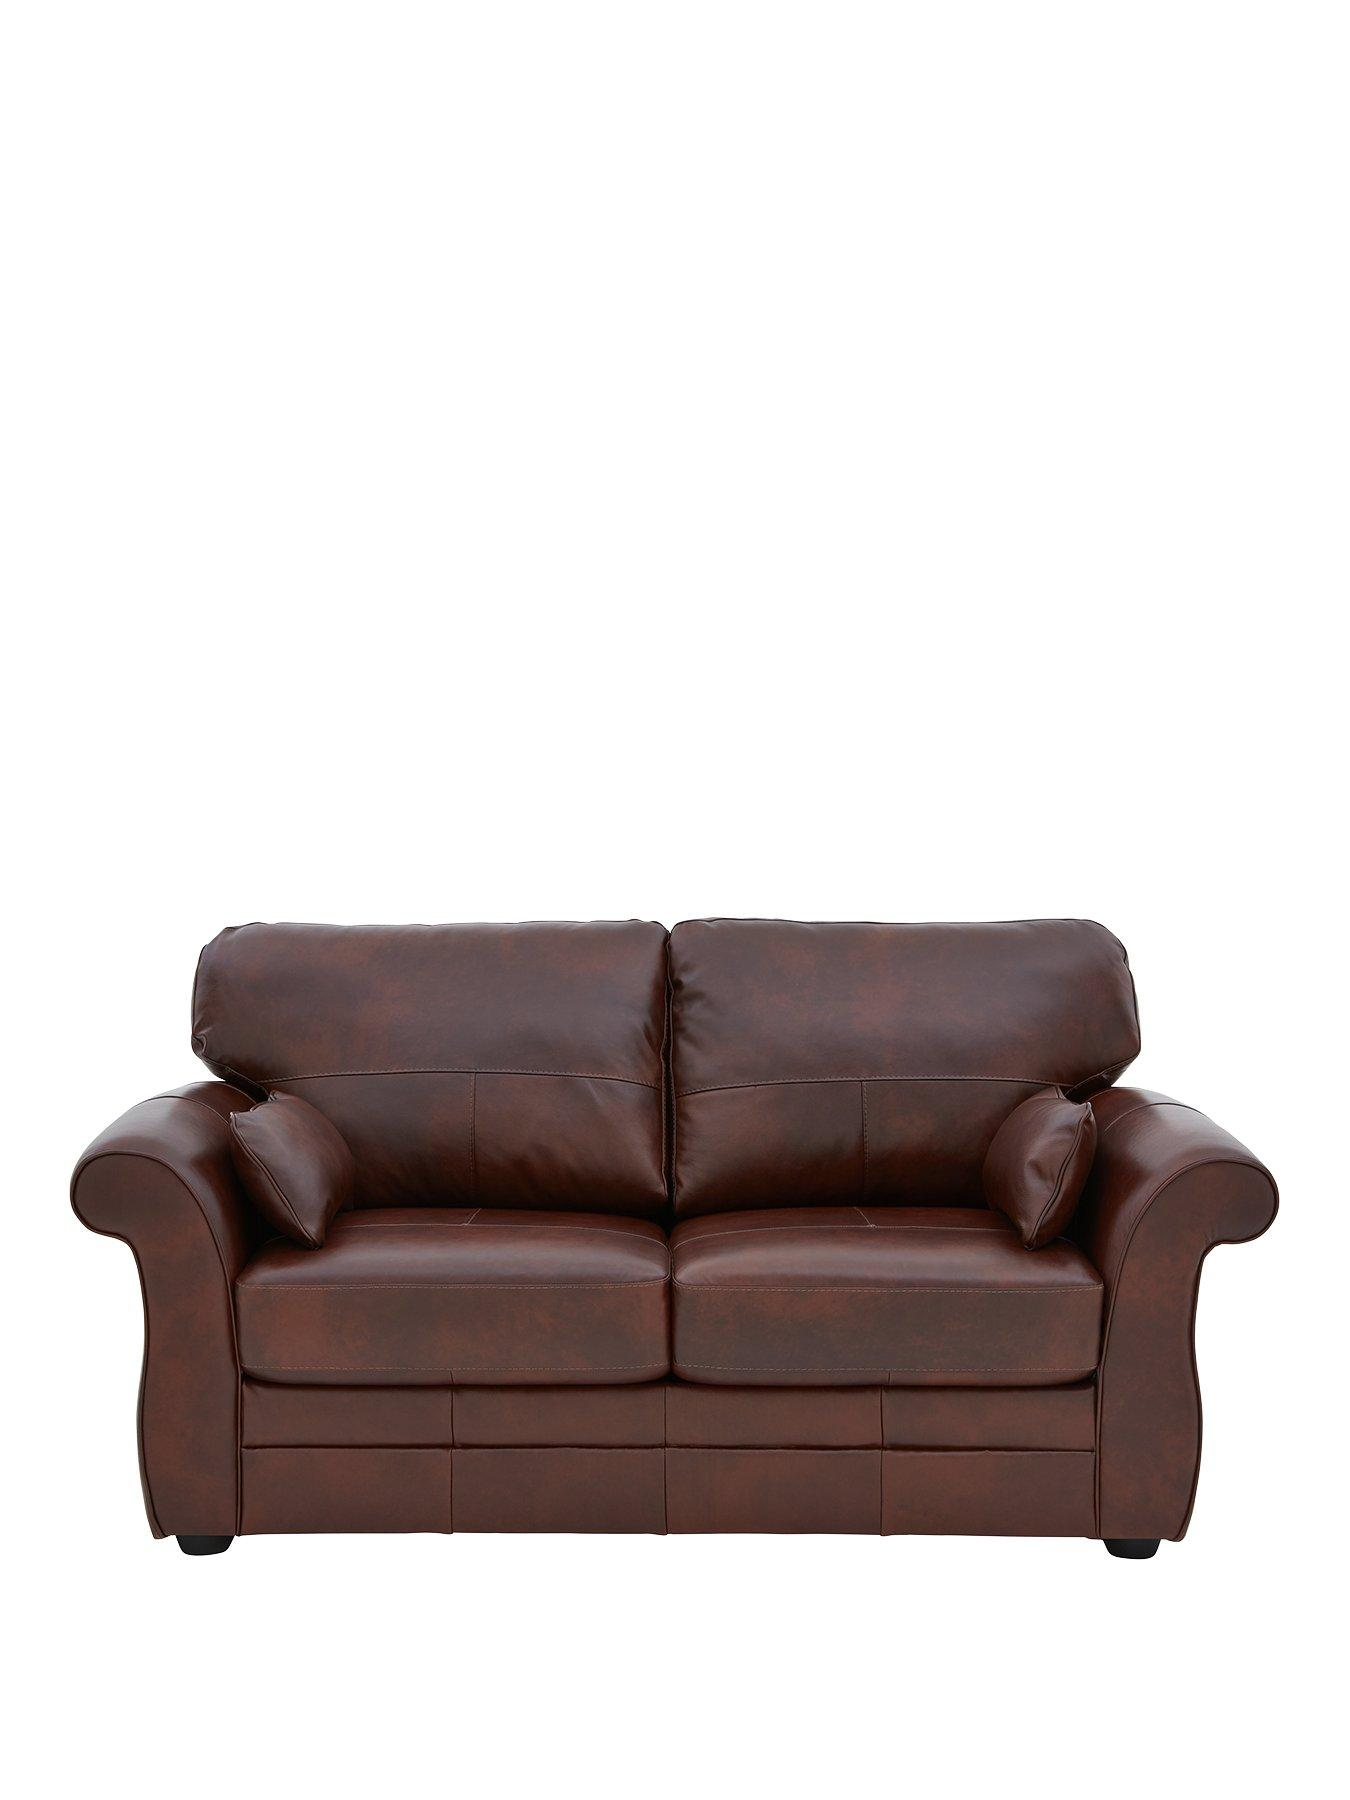 italy leather sofa uk quality sofas for cheap vantage italian bed very co